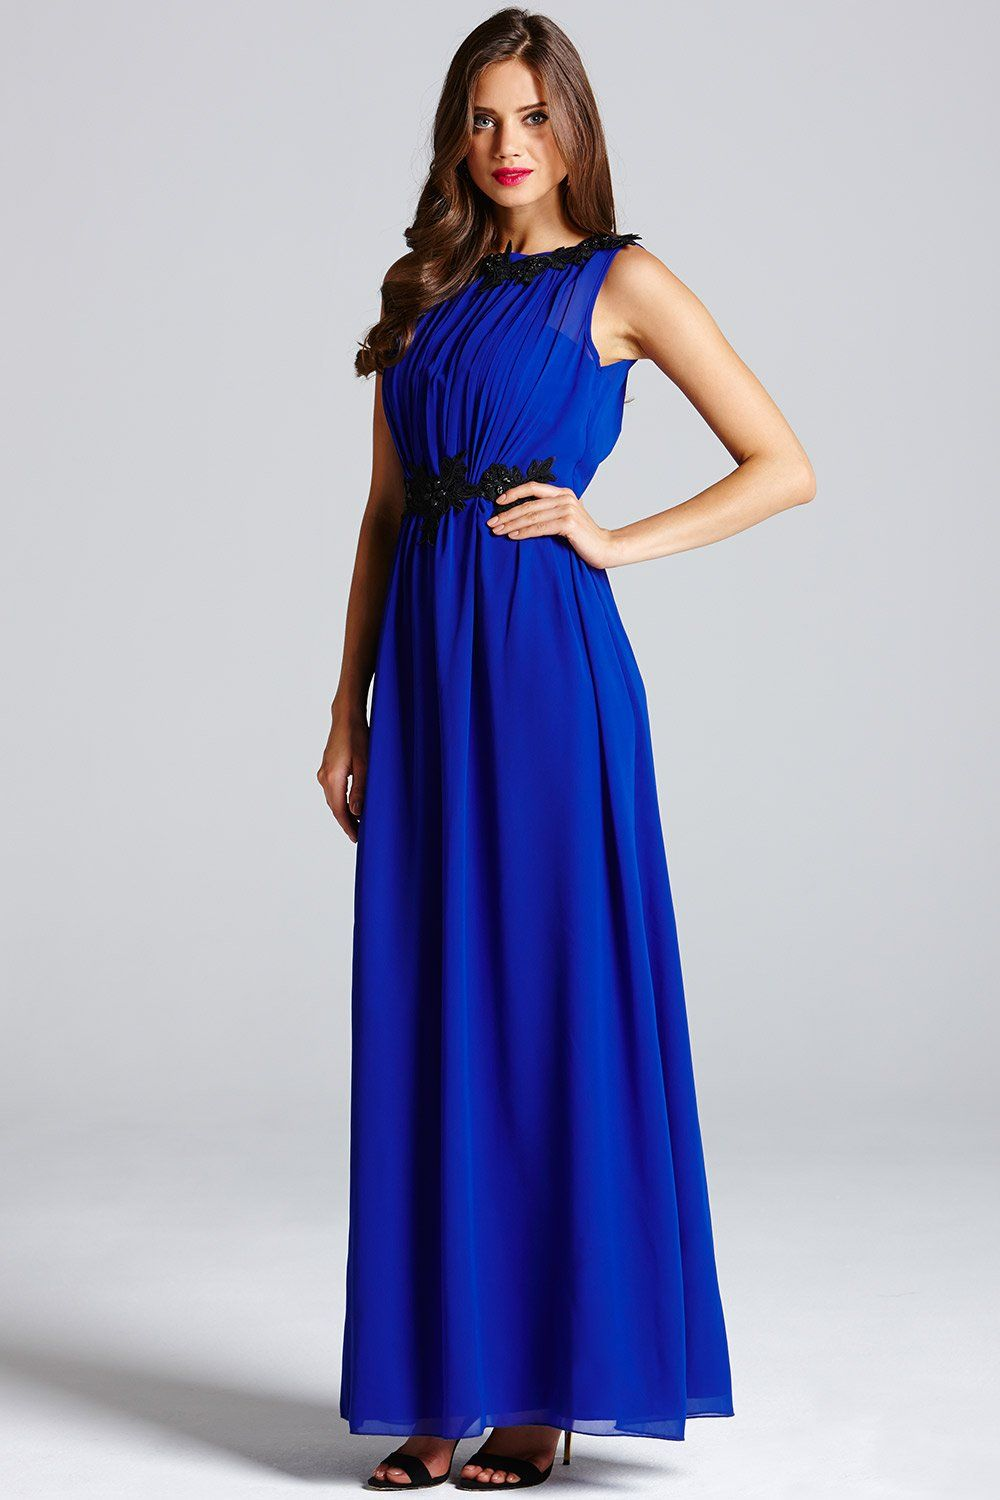 blue-maxi-dress-1-2 | Blue Maxi Dress | Pinterest | Blue maxi ...